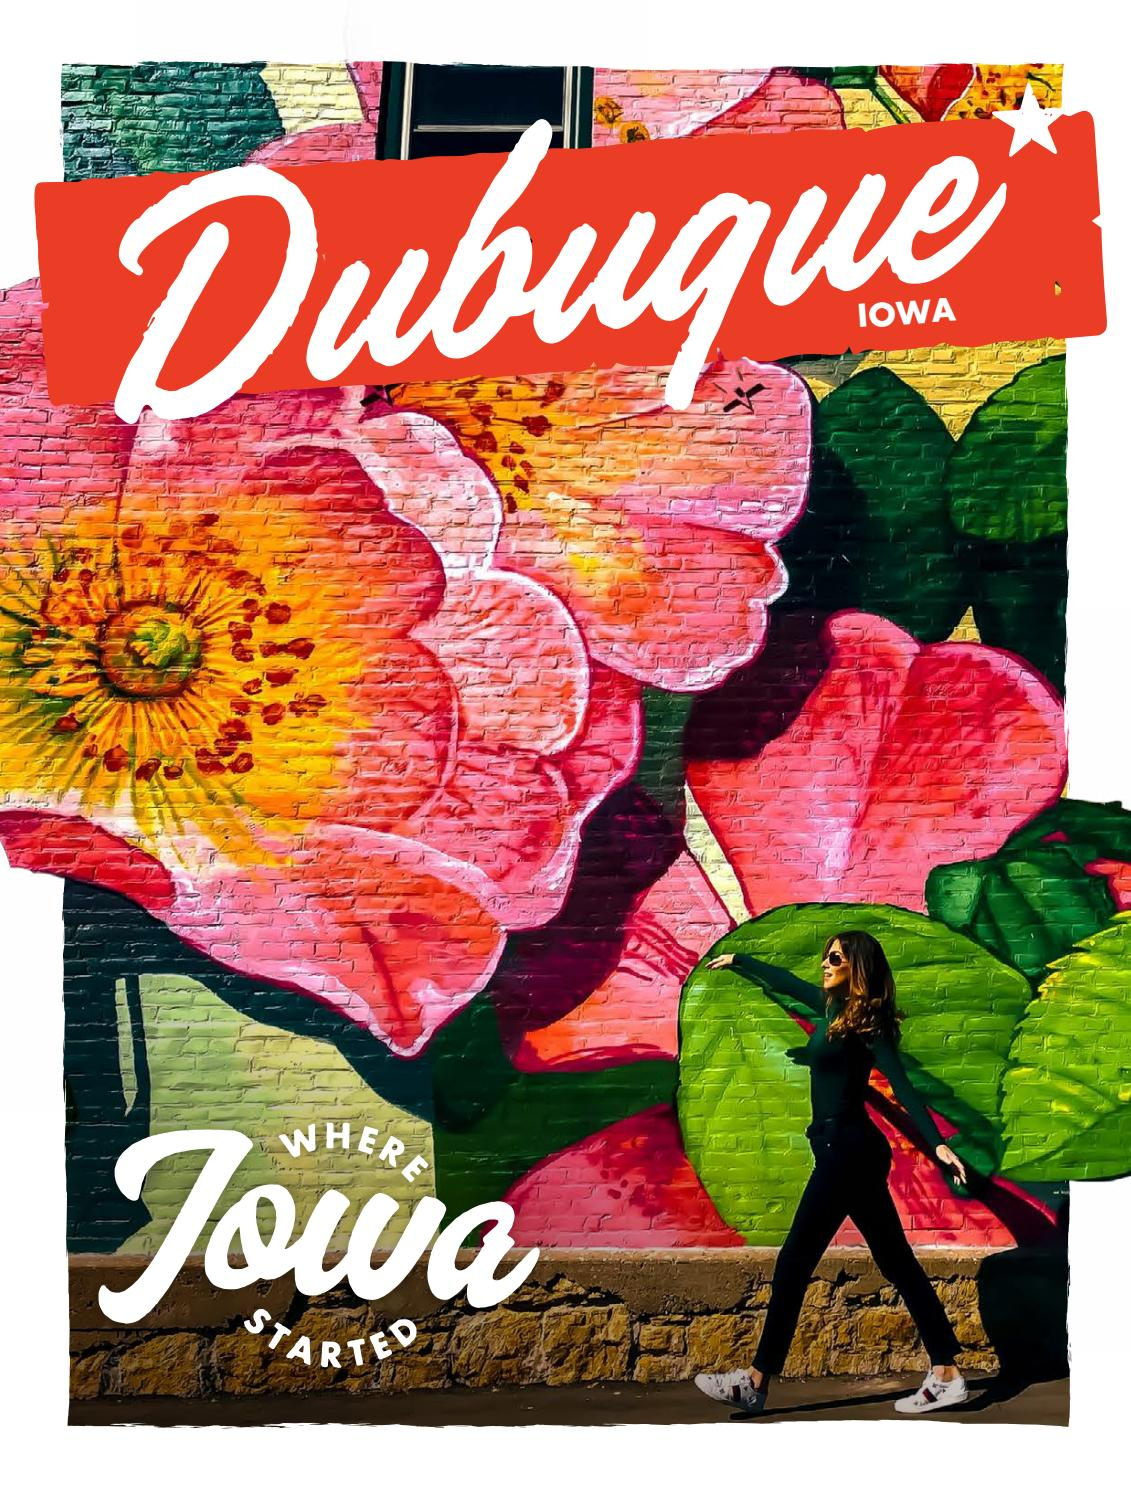 9a31a304 2019 Dubuque, Iowa Travel Guide by Travel Dubuque - issuu